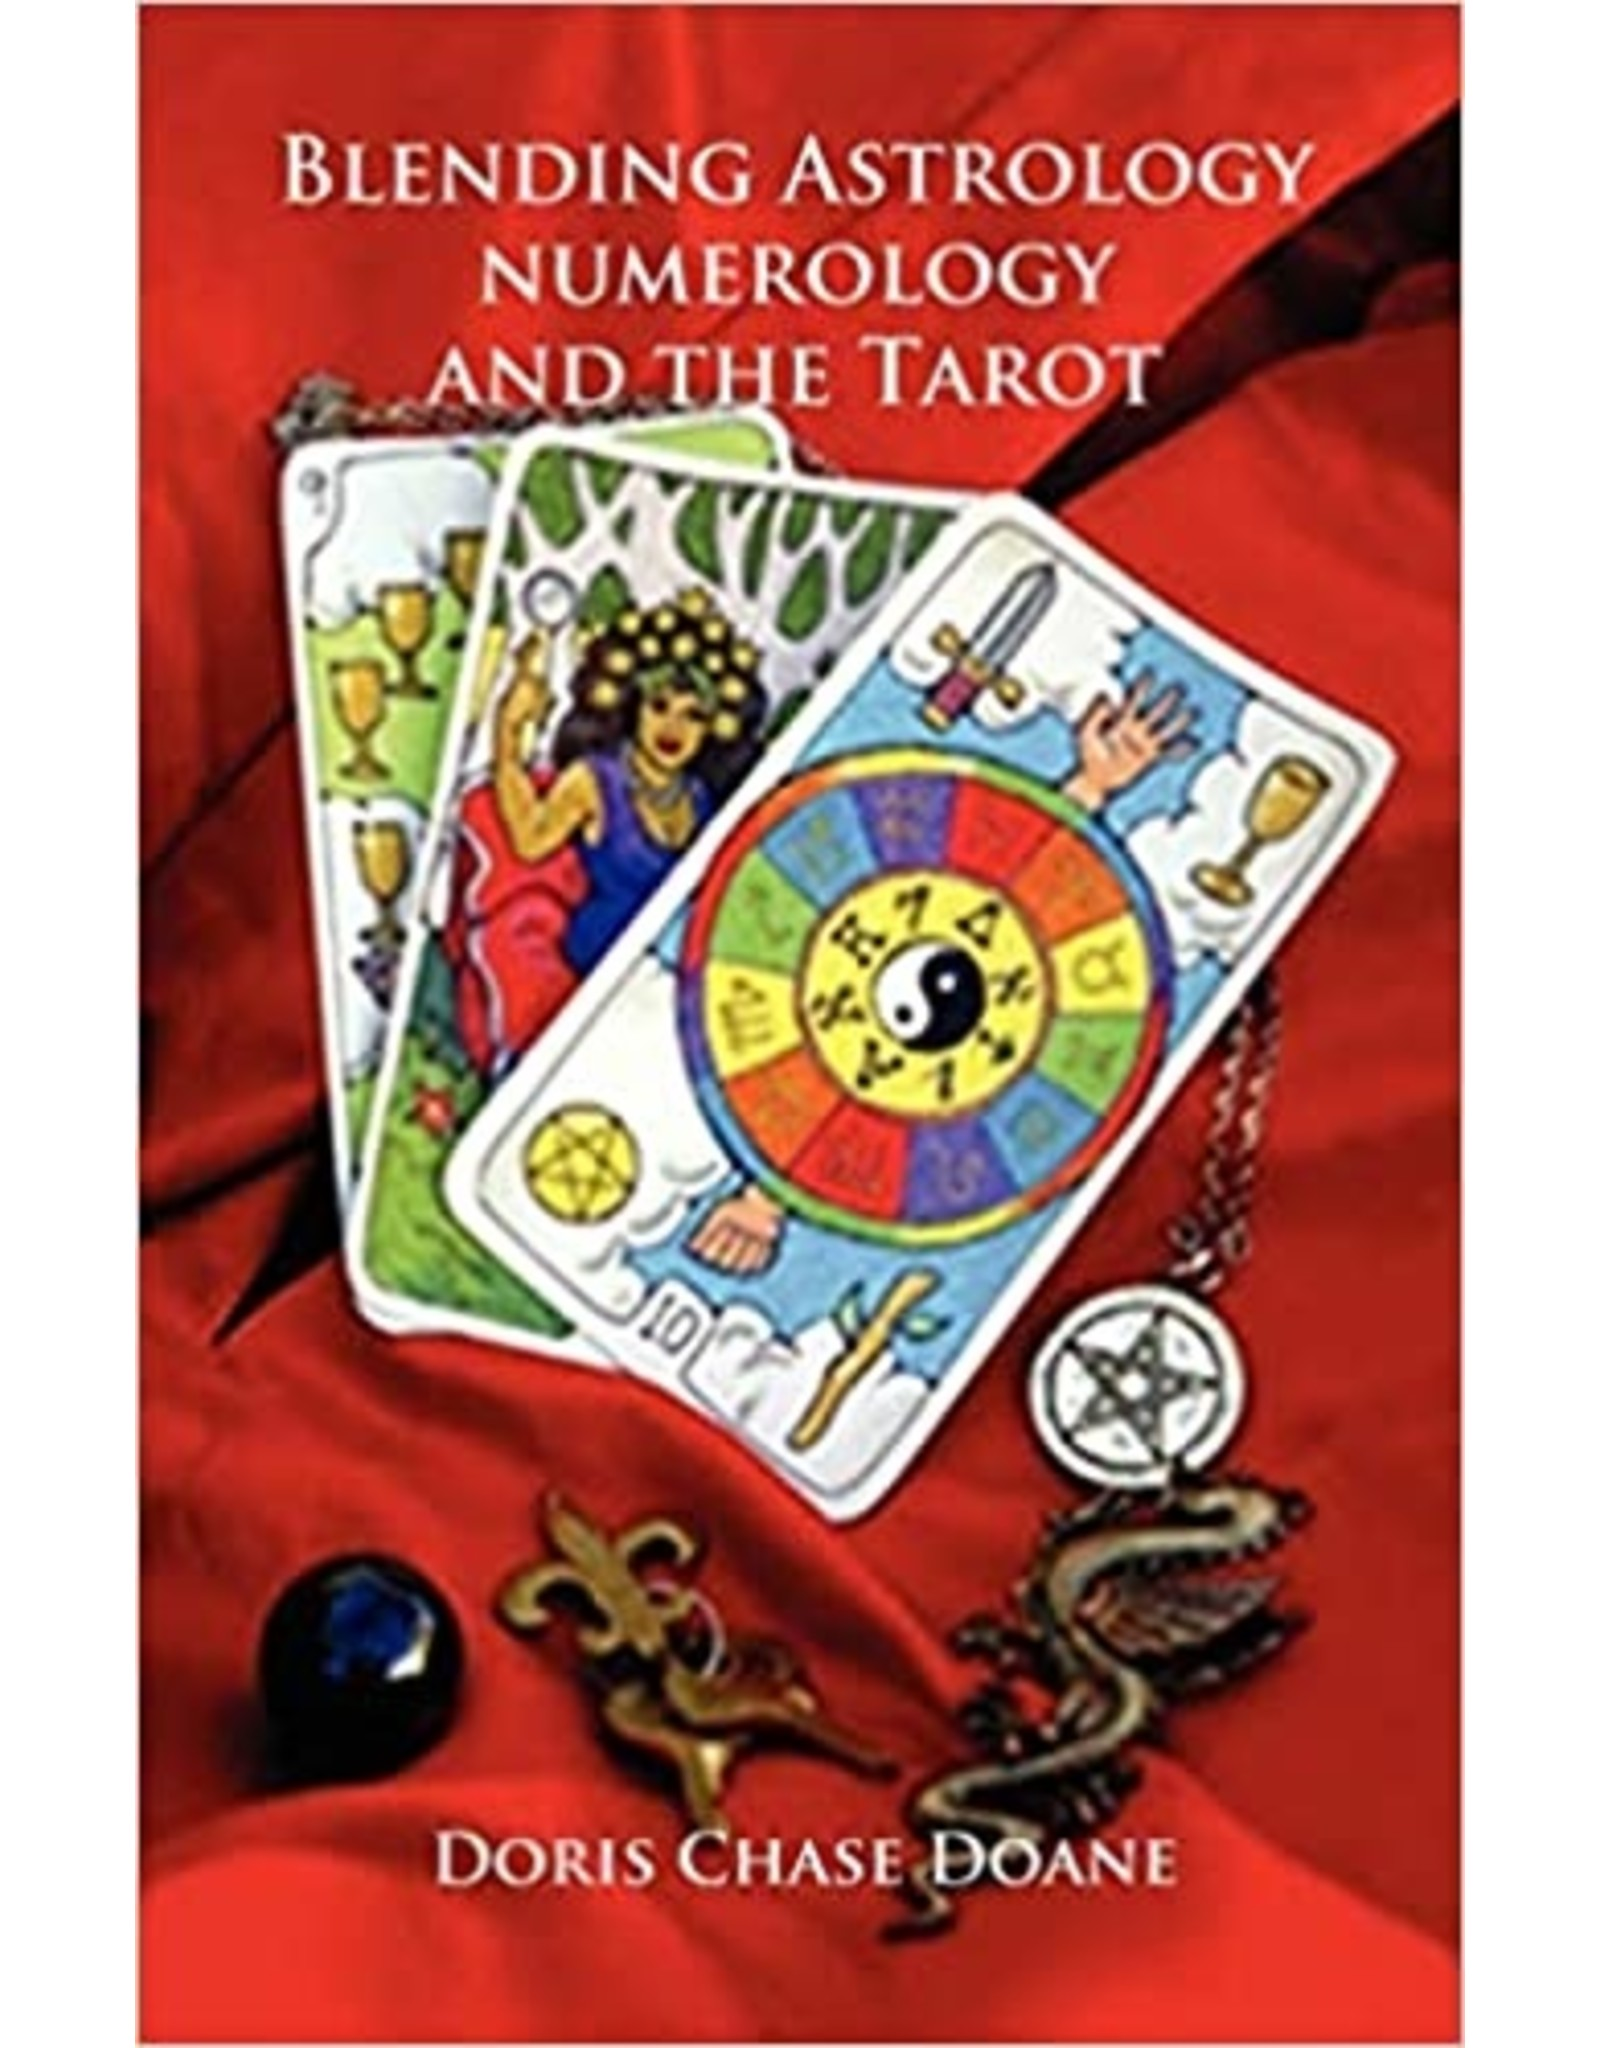 Blending Astrology/Numerology/Tarot